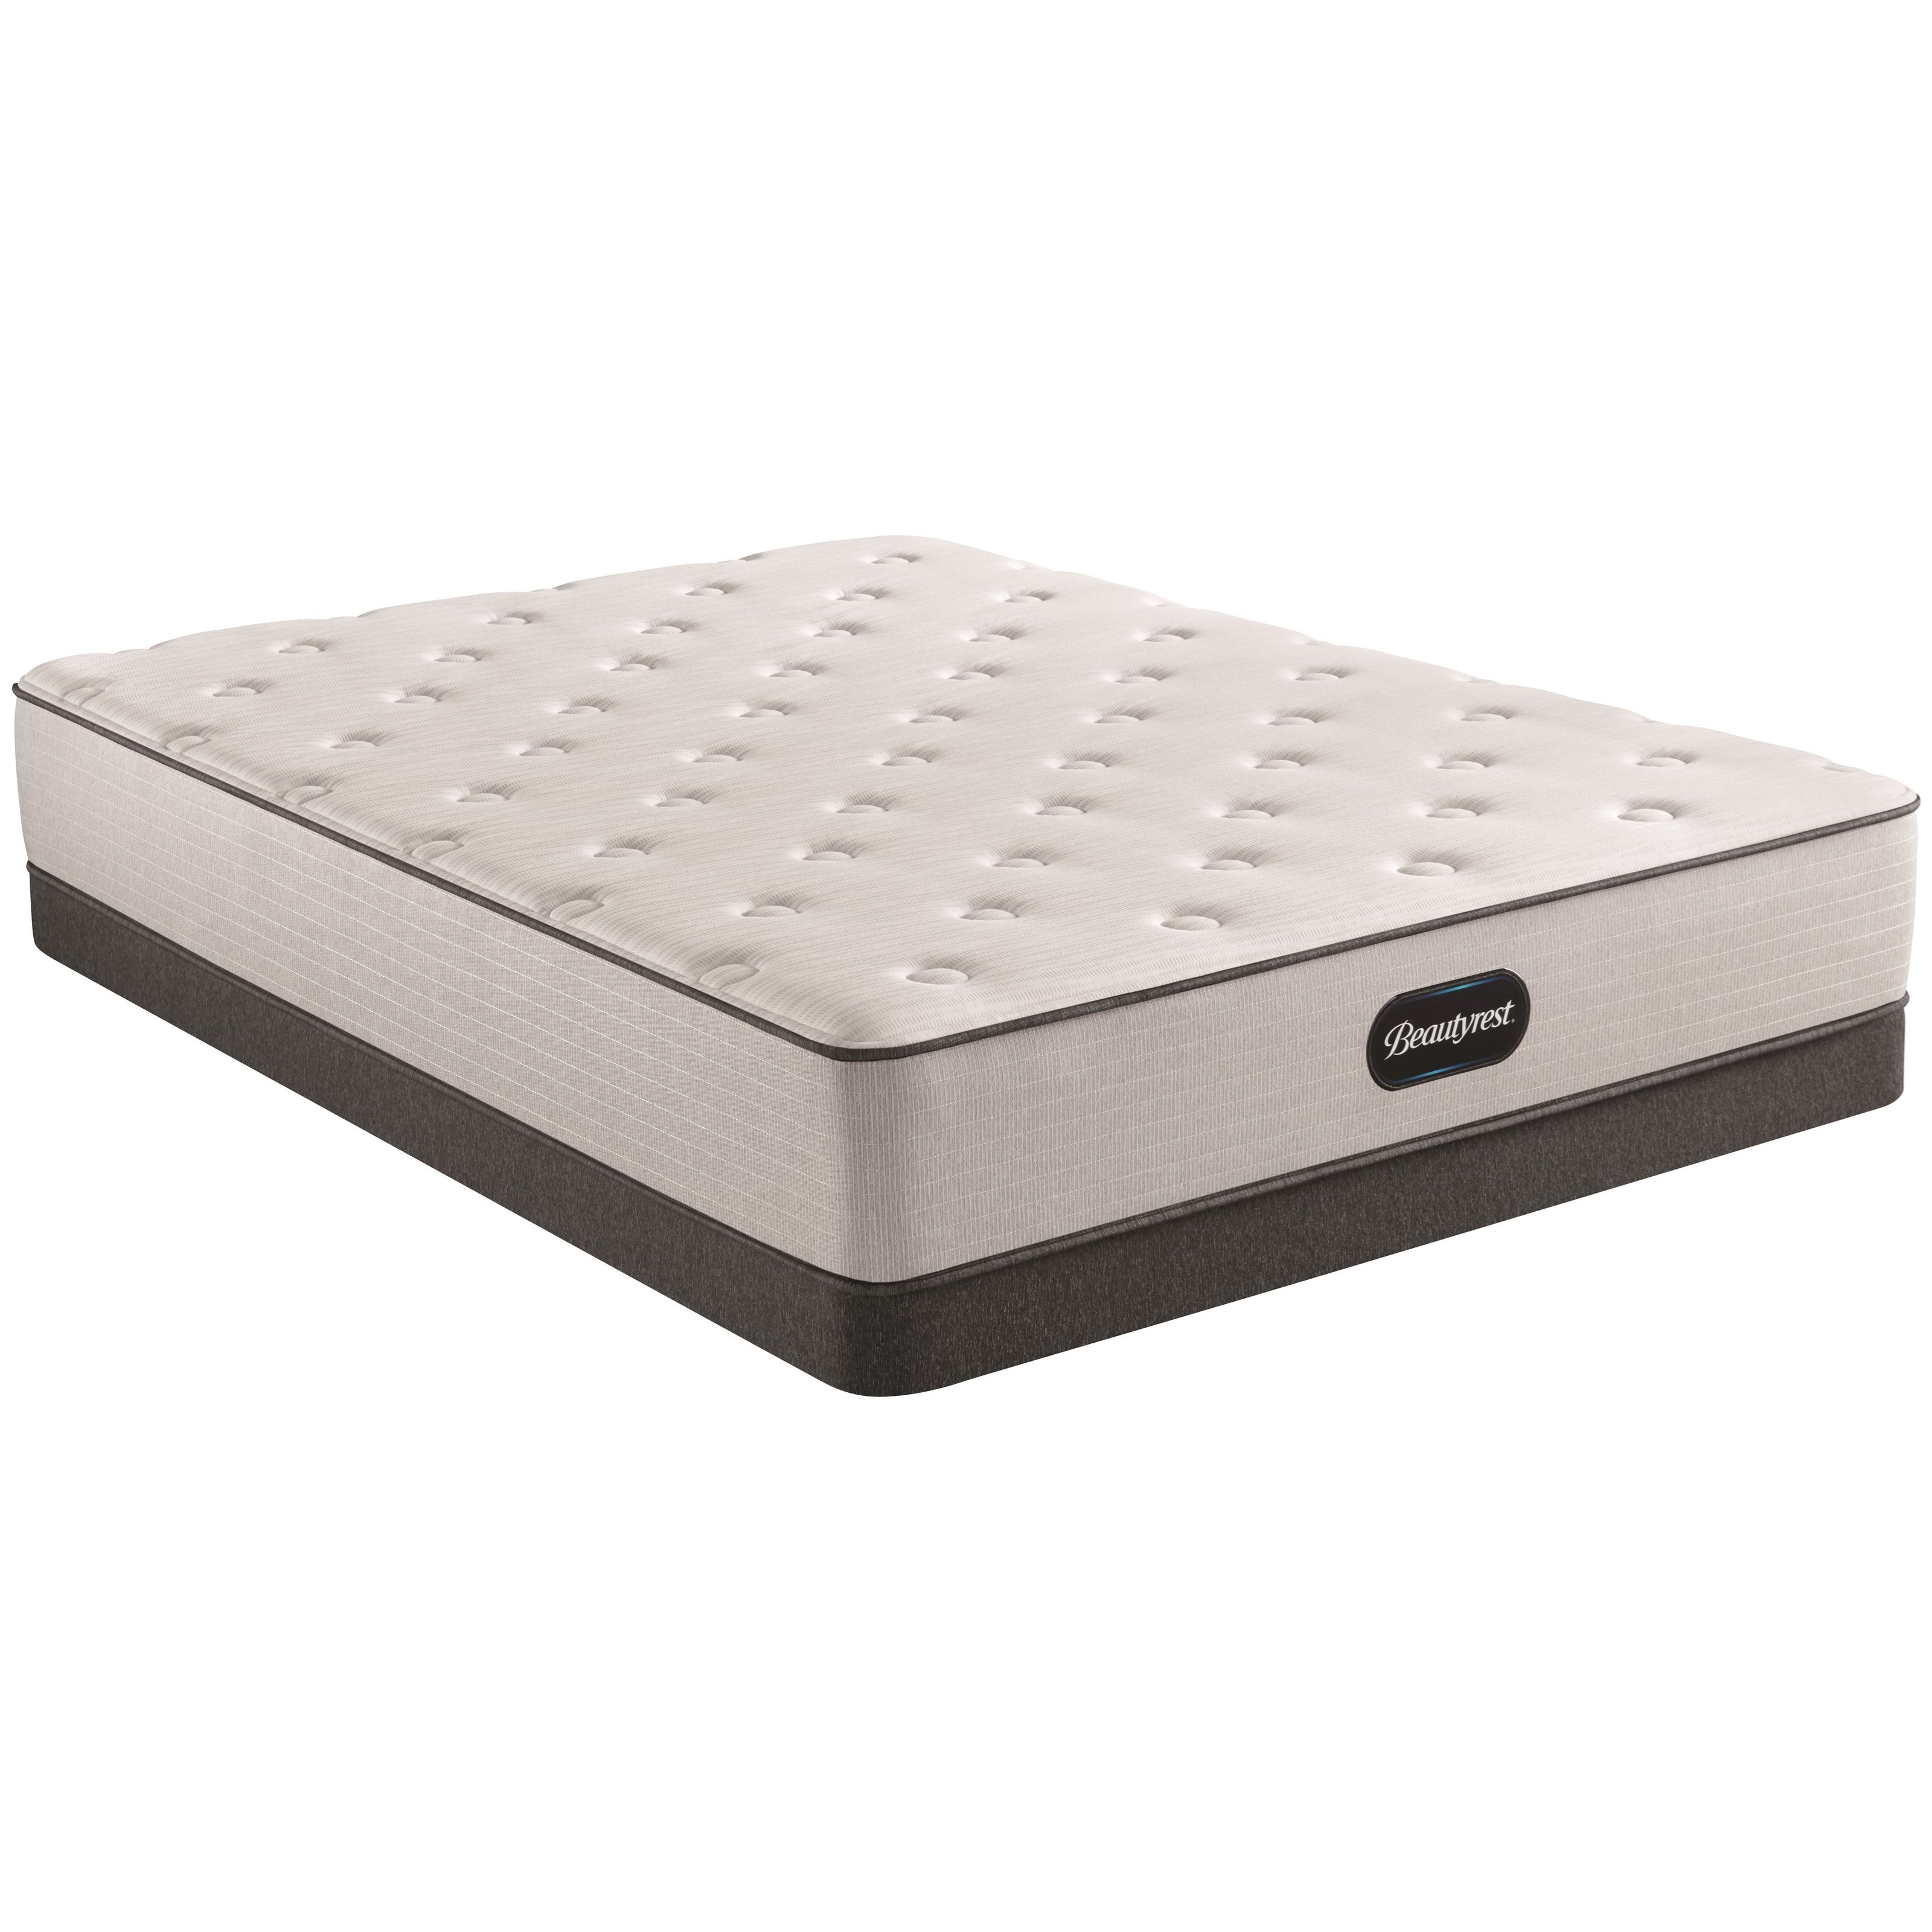 """BR8000 Plush Full 12"""" Plush Pocketed Coil LP Set by Beautyrest at Houston's Yuma Furniture"""